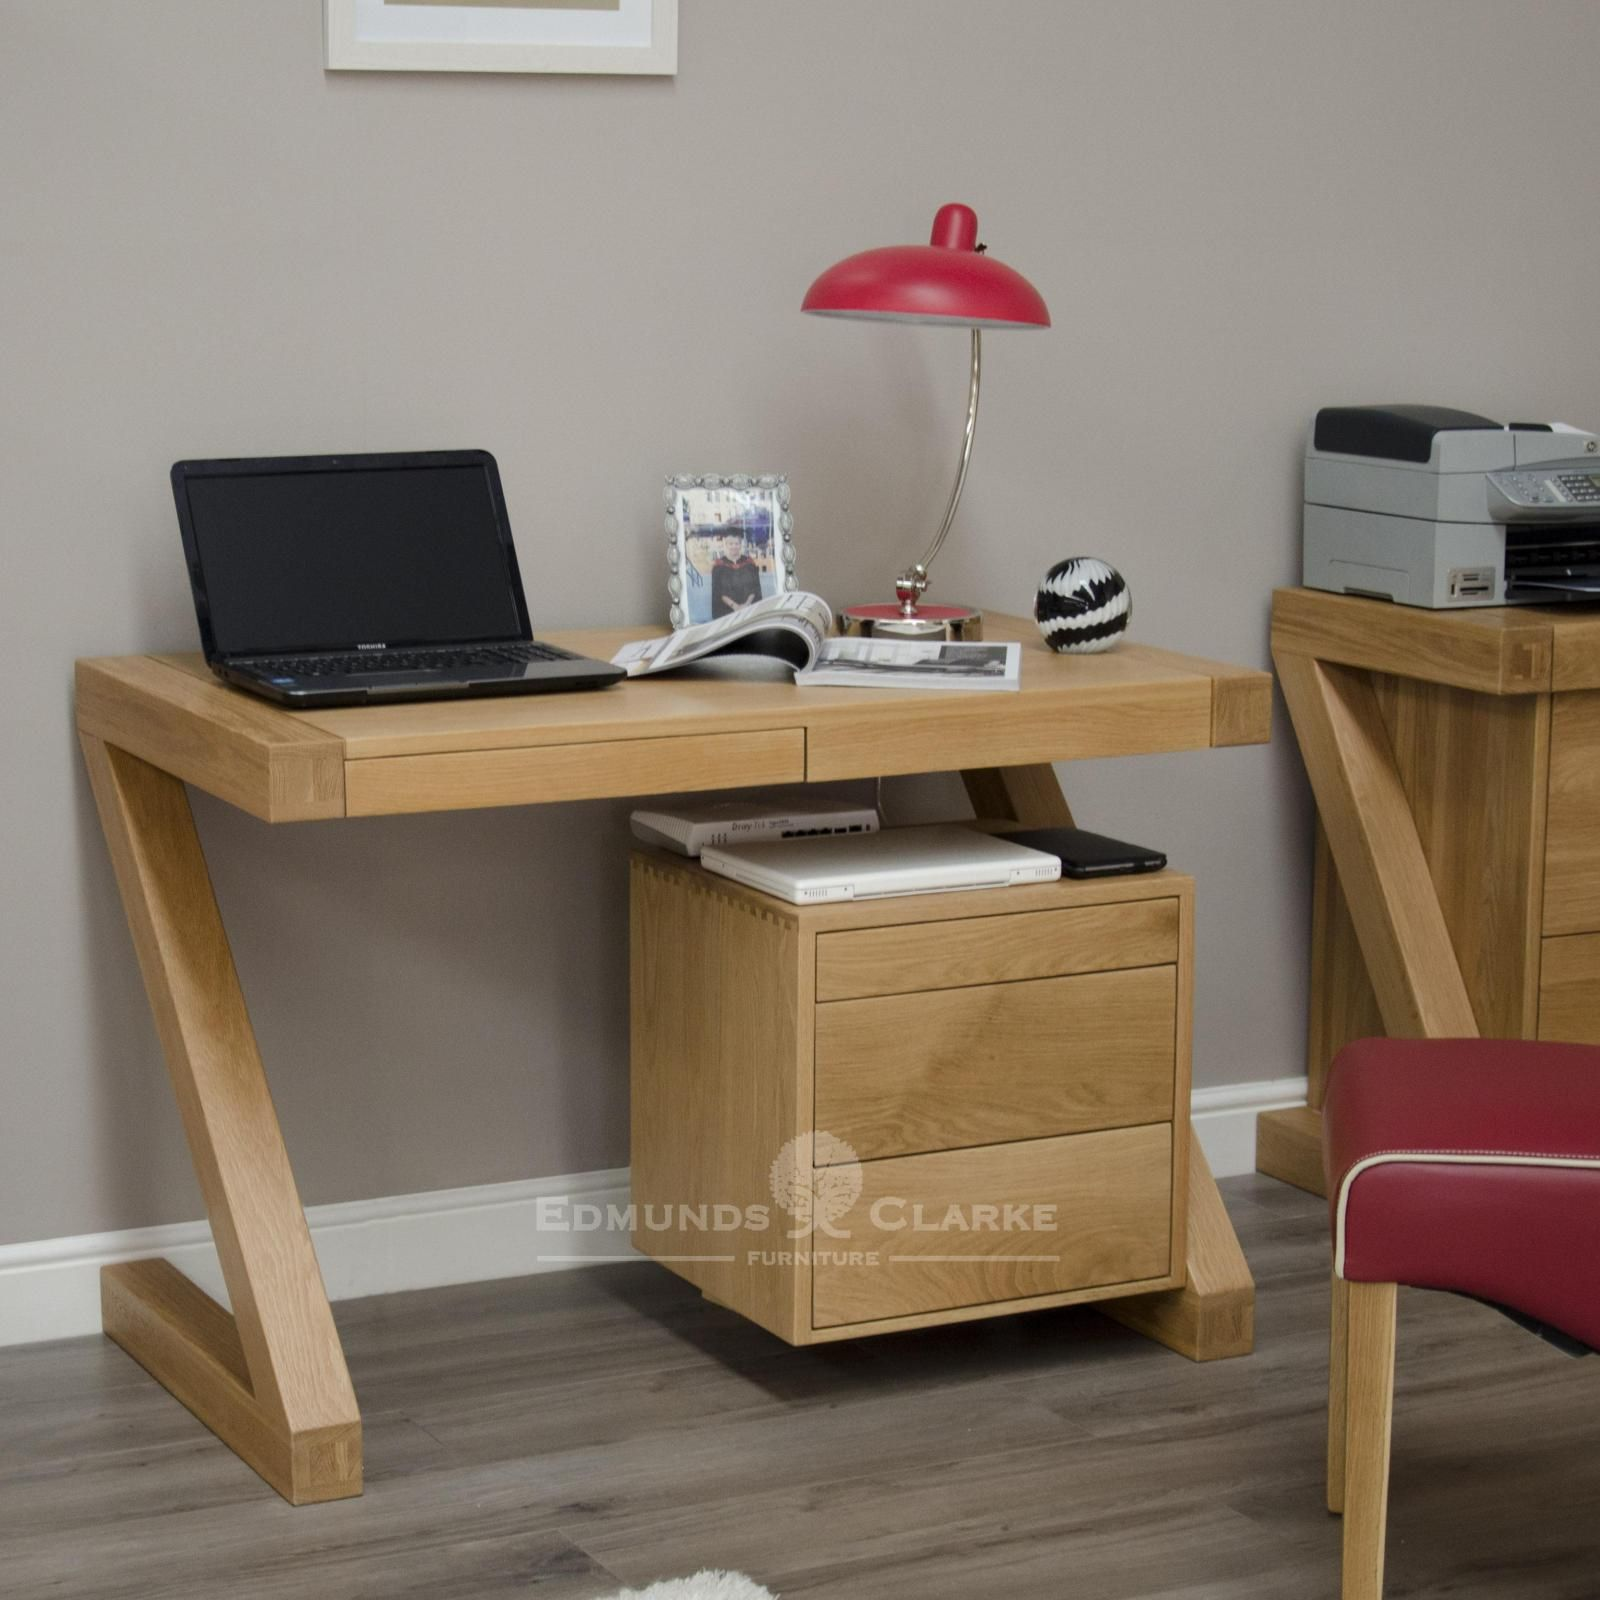 Gentil Small Pine Computer Desk   Rustic Living Room Furniture Sets Check More At  Http:/